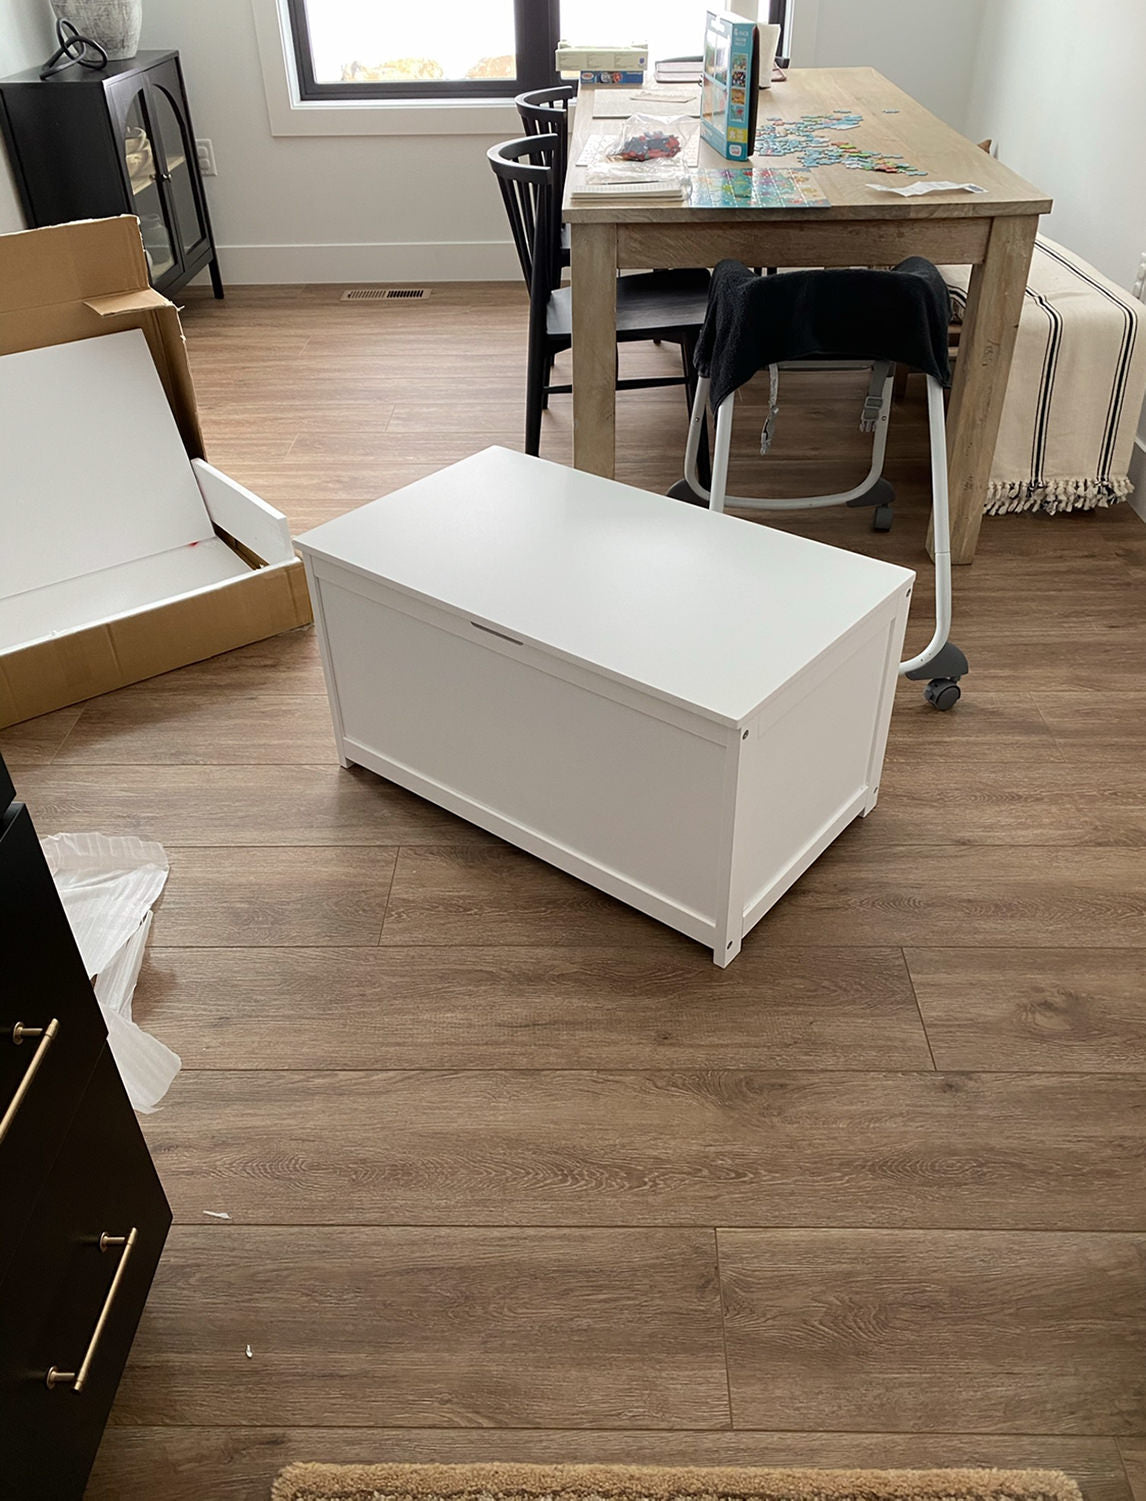 Toy Box Built-In Dining Bench